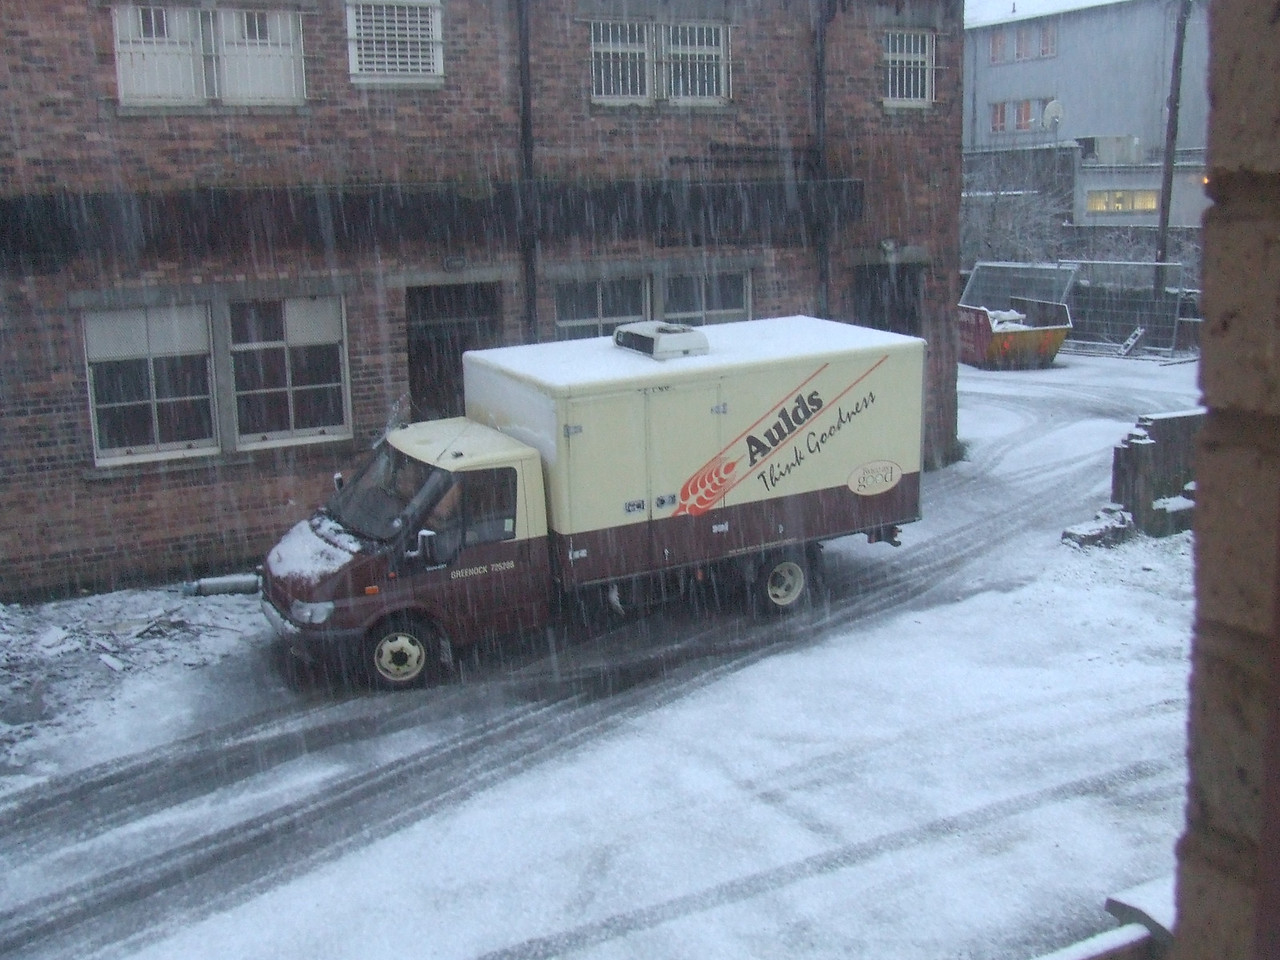 Aulds van waiting to make it's delivery in the snow